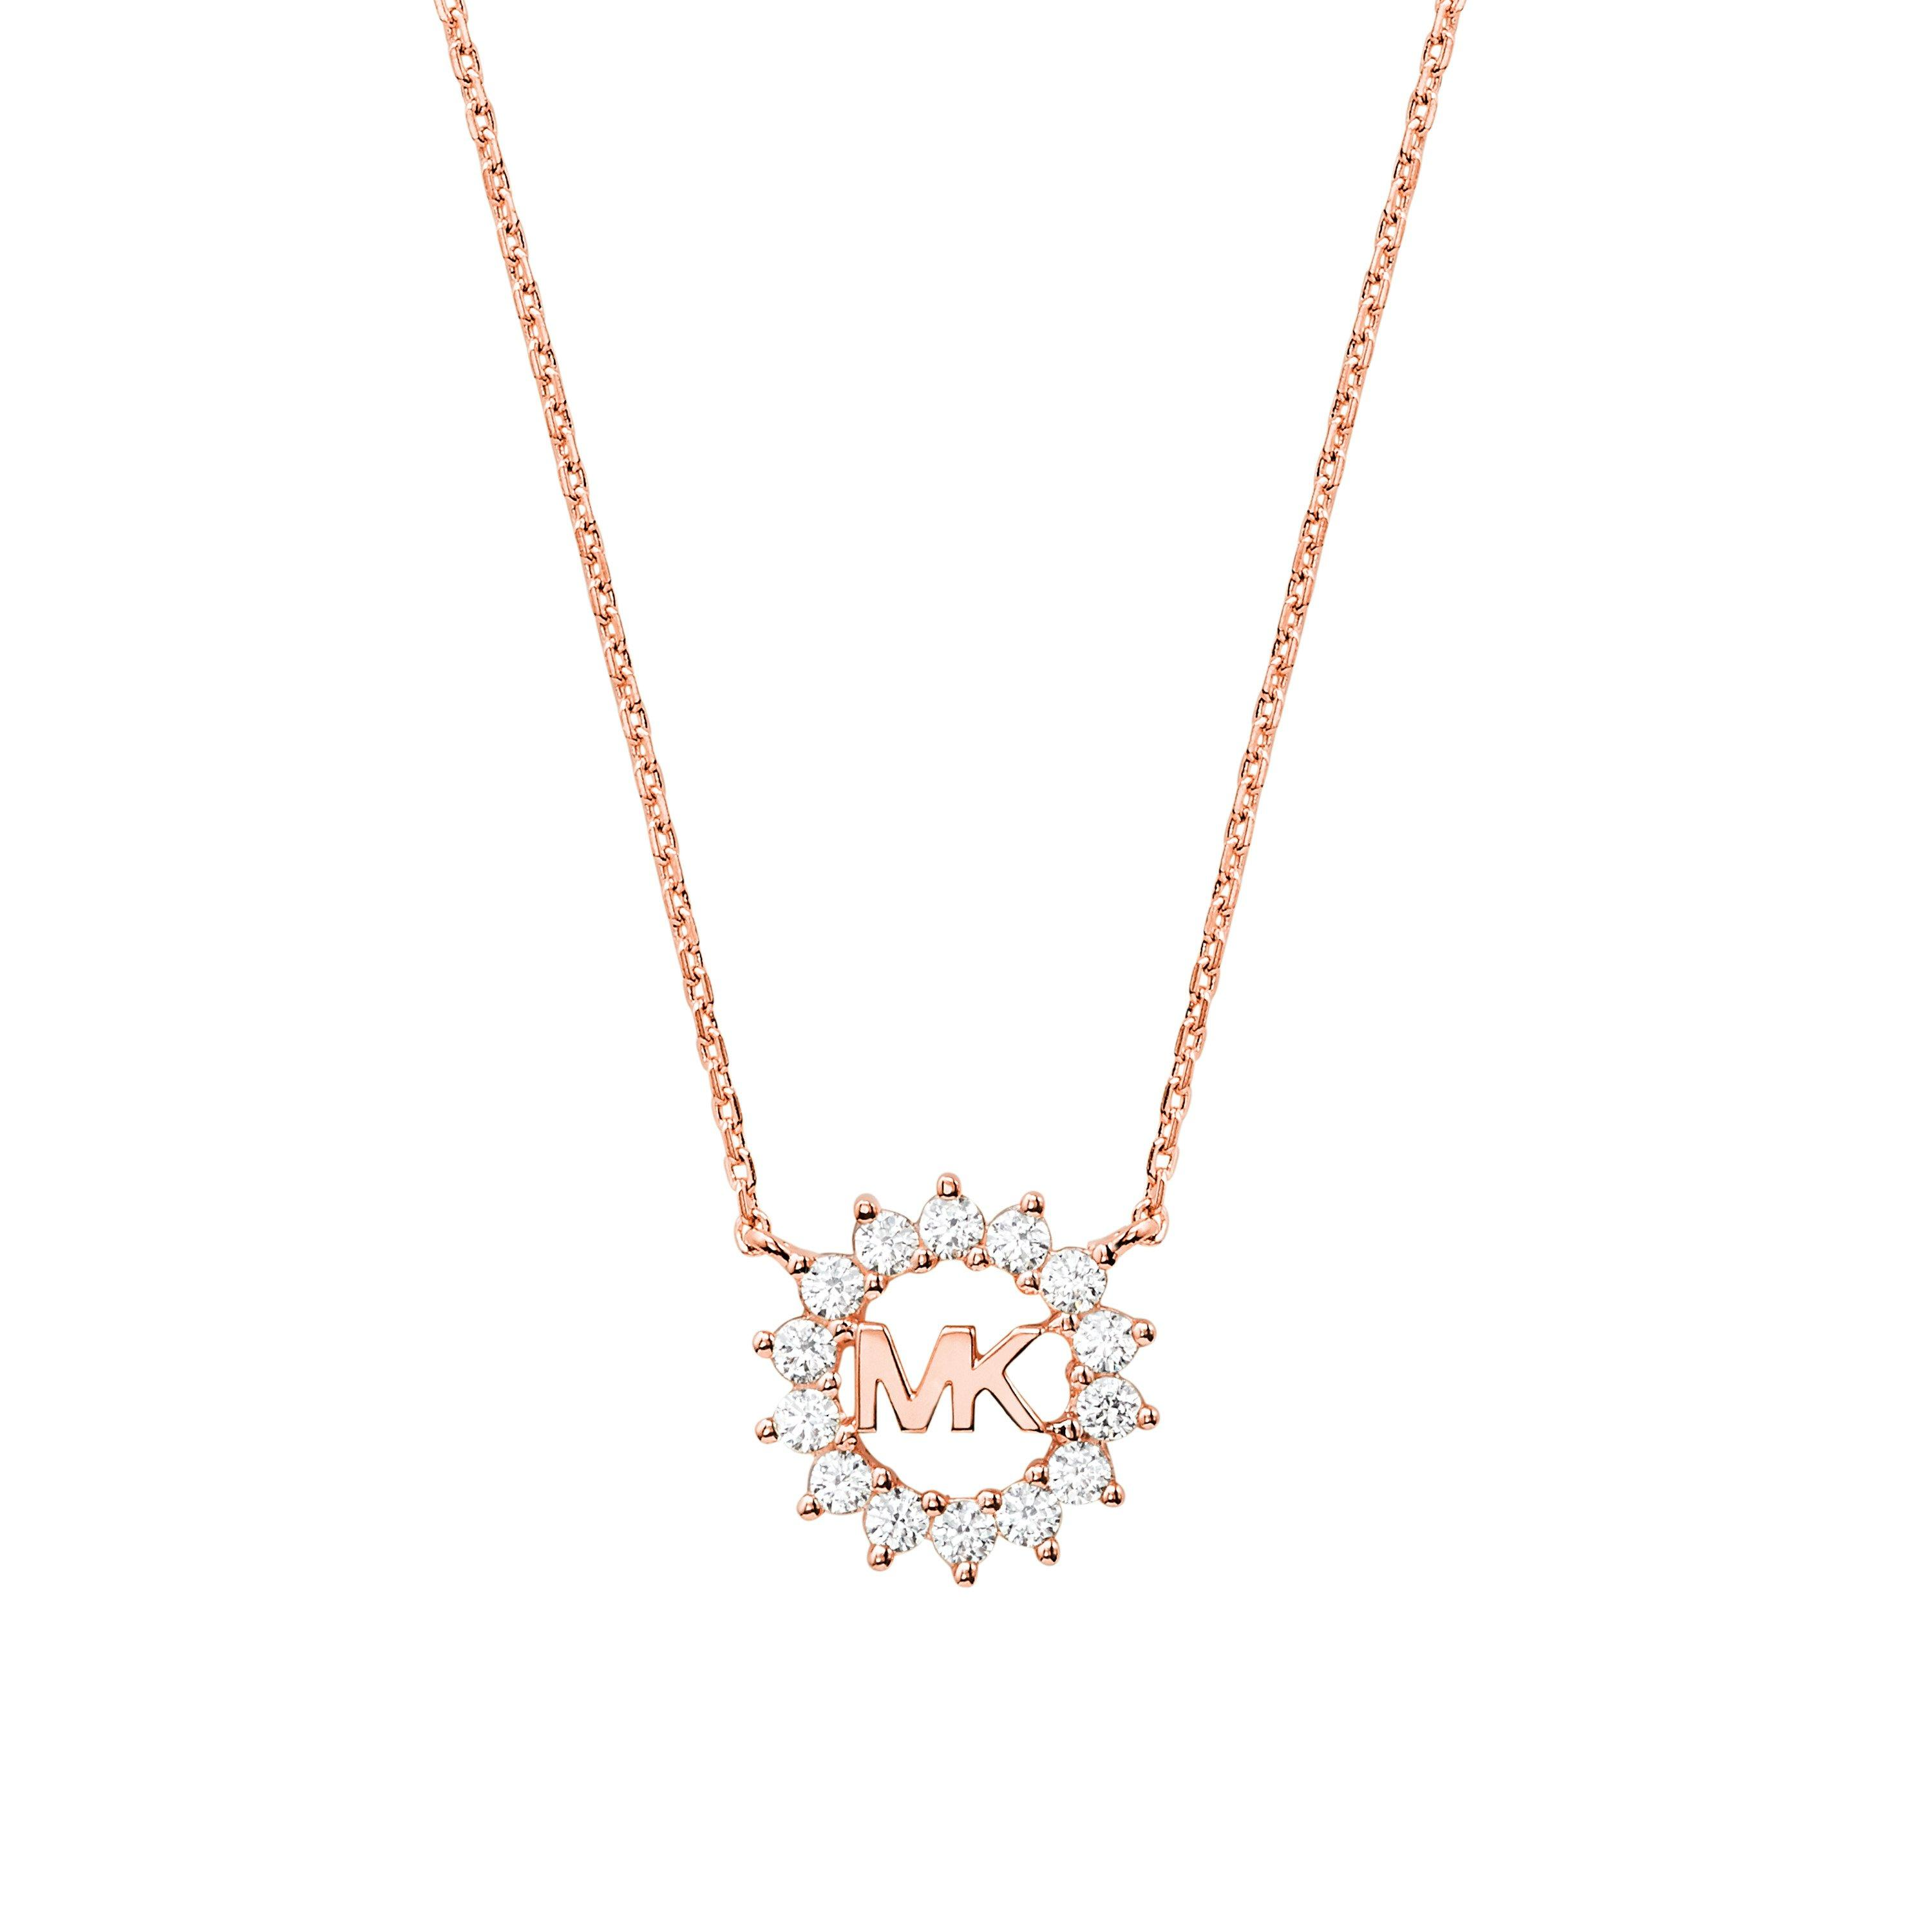 Michael Kors Exclusive Love Rose Gold Plated Silver Necklace